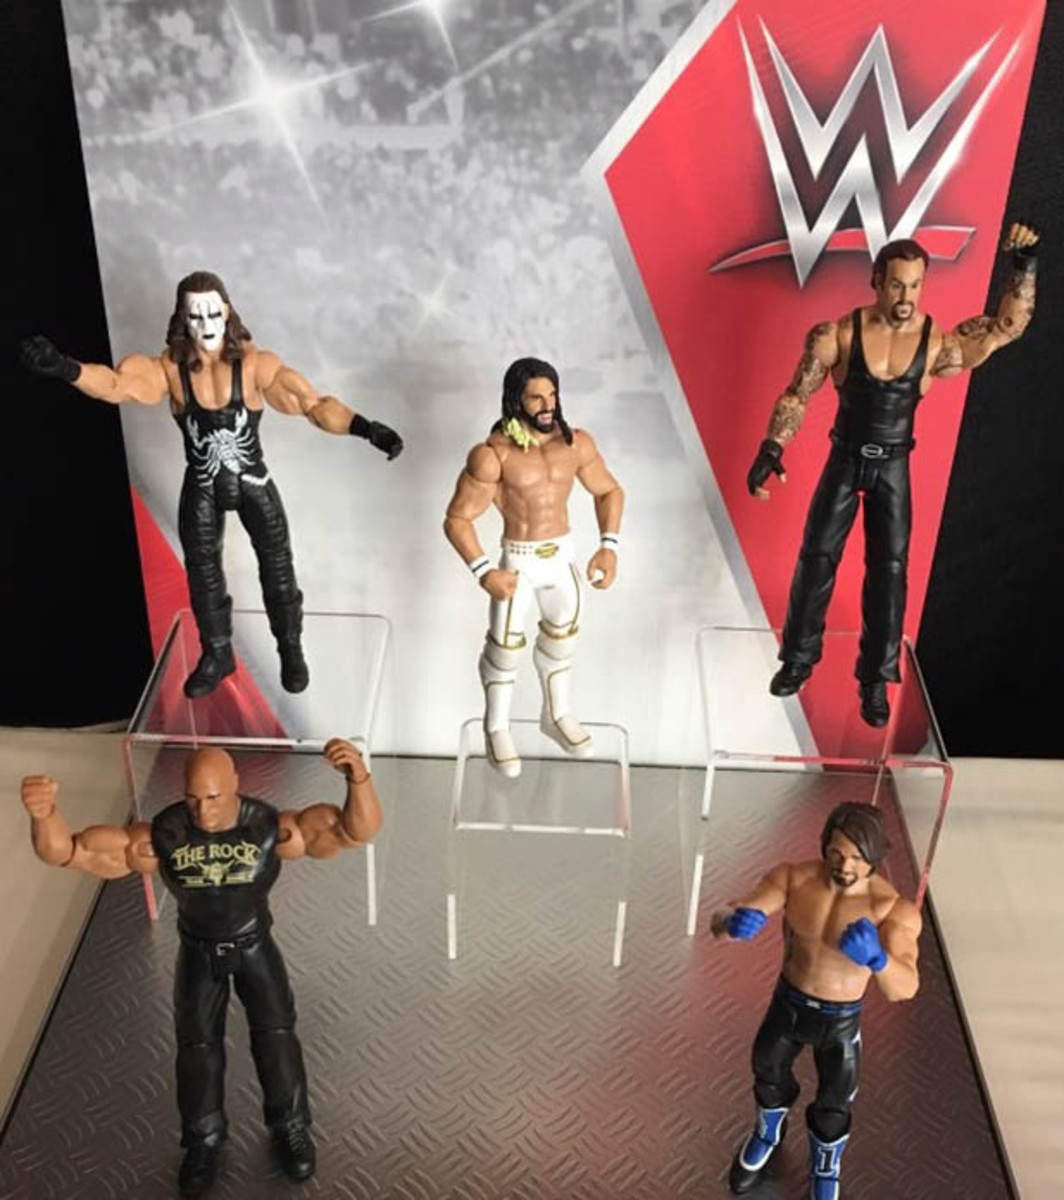 wwe-core-figures.jpg